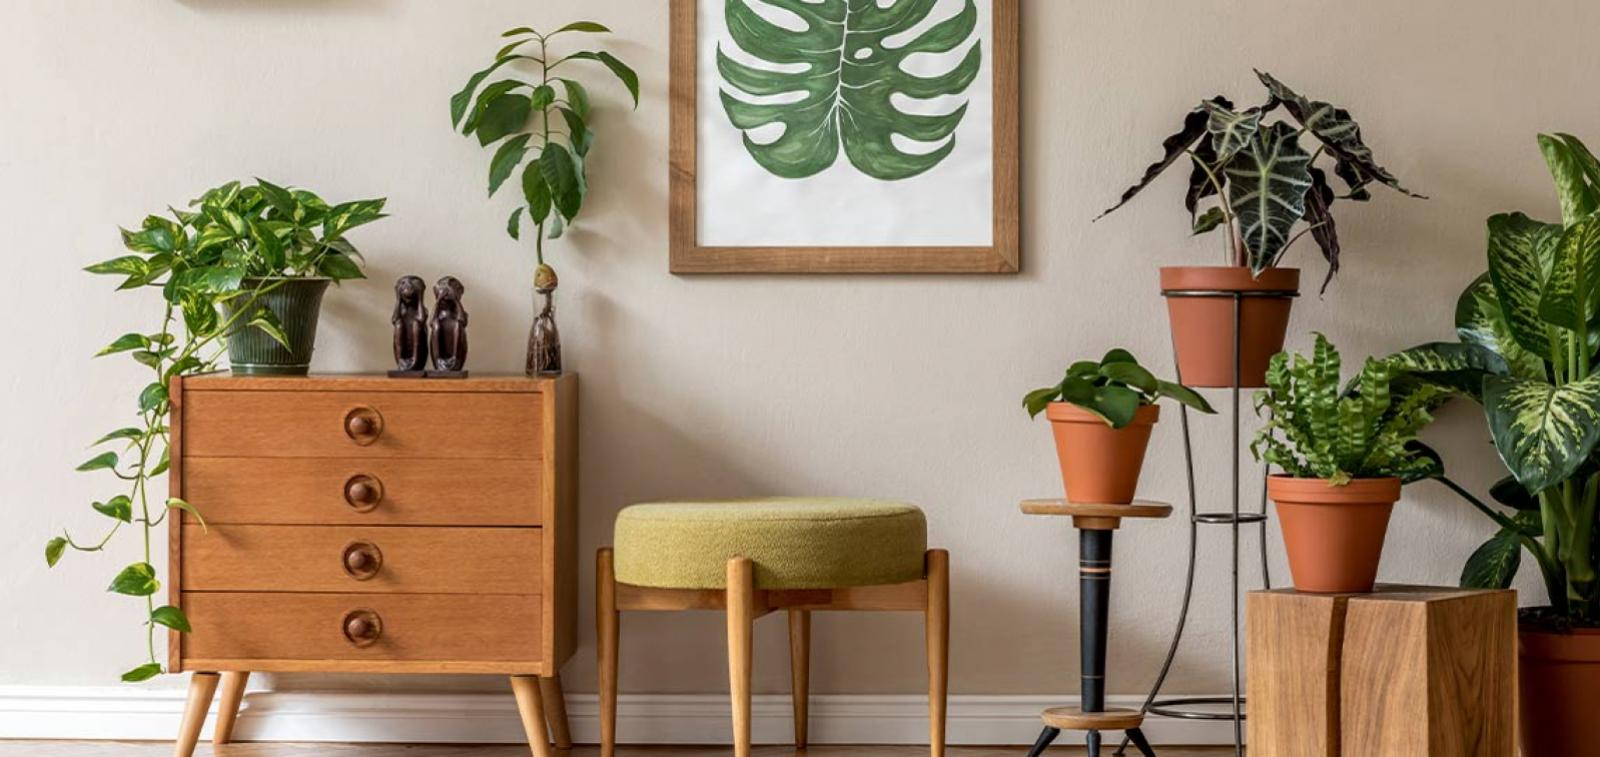 Collection of houseplants